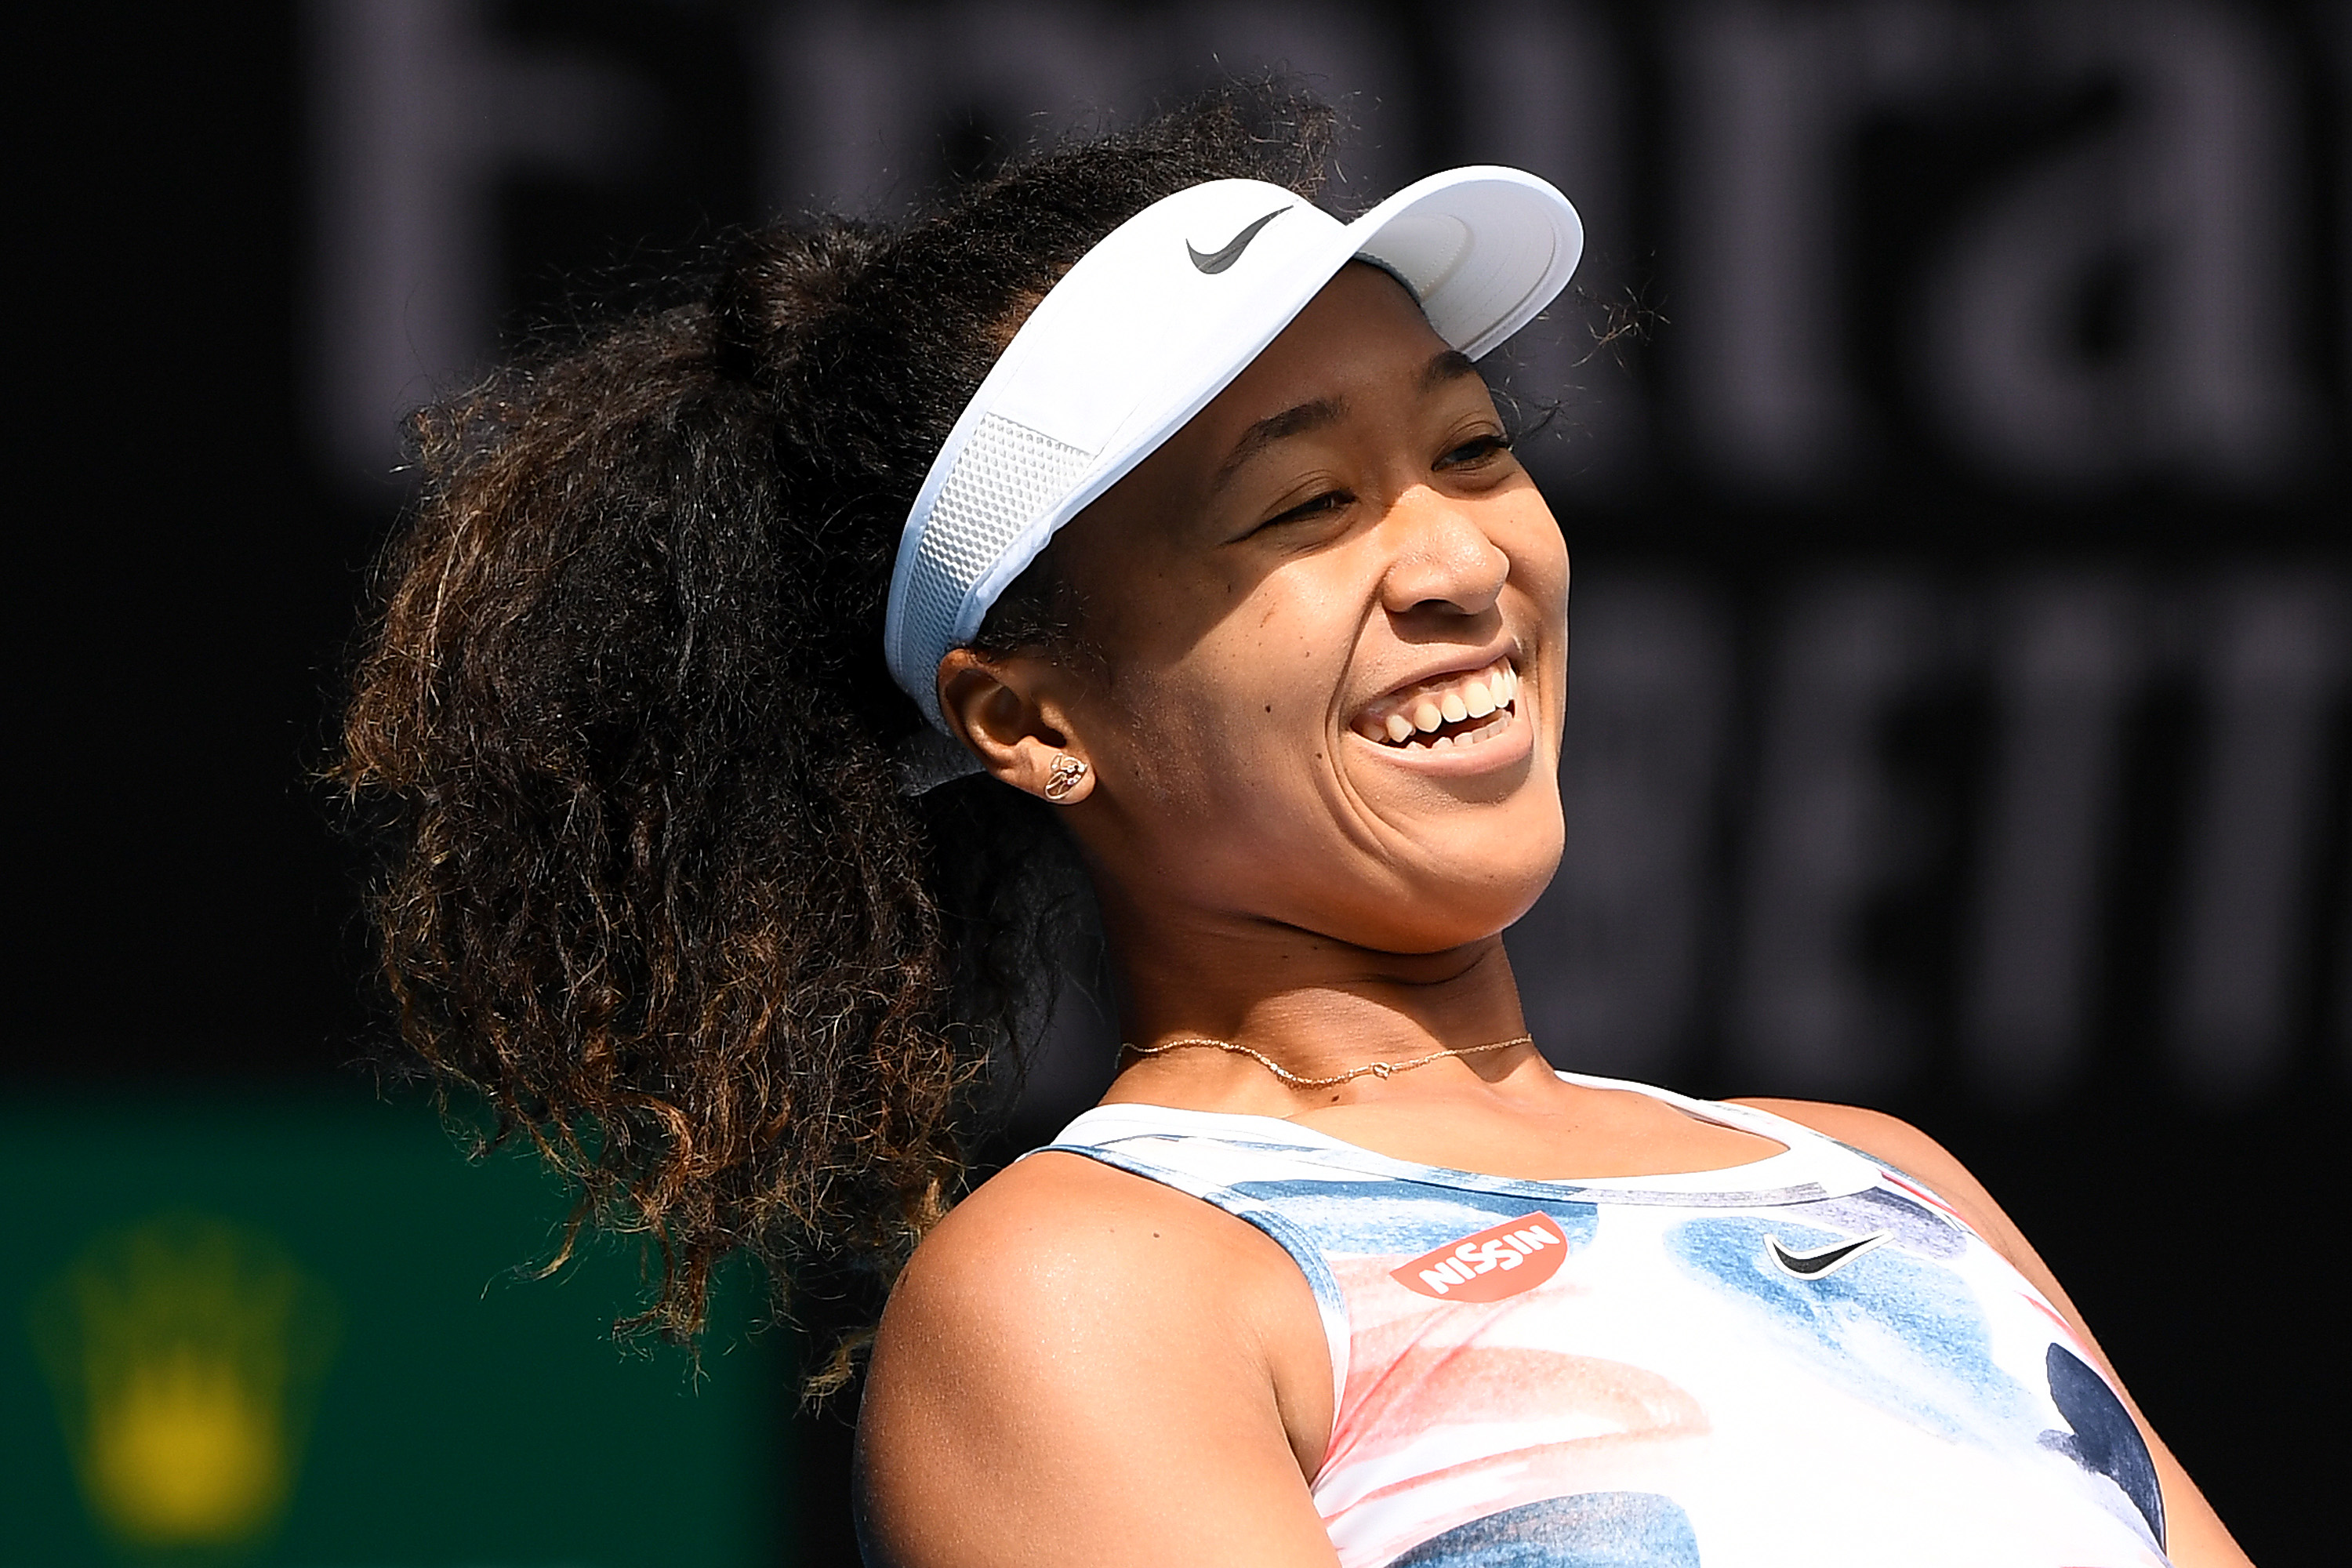 Naomi Osaka becomes highest-paid female athlete in history after earning $37 million last year